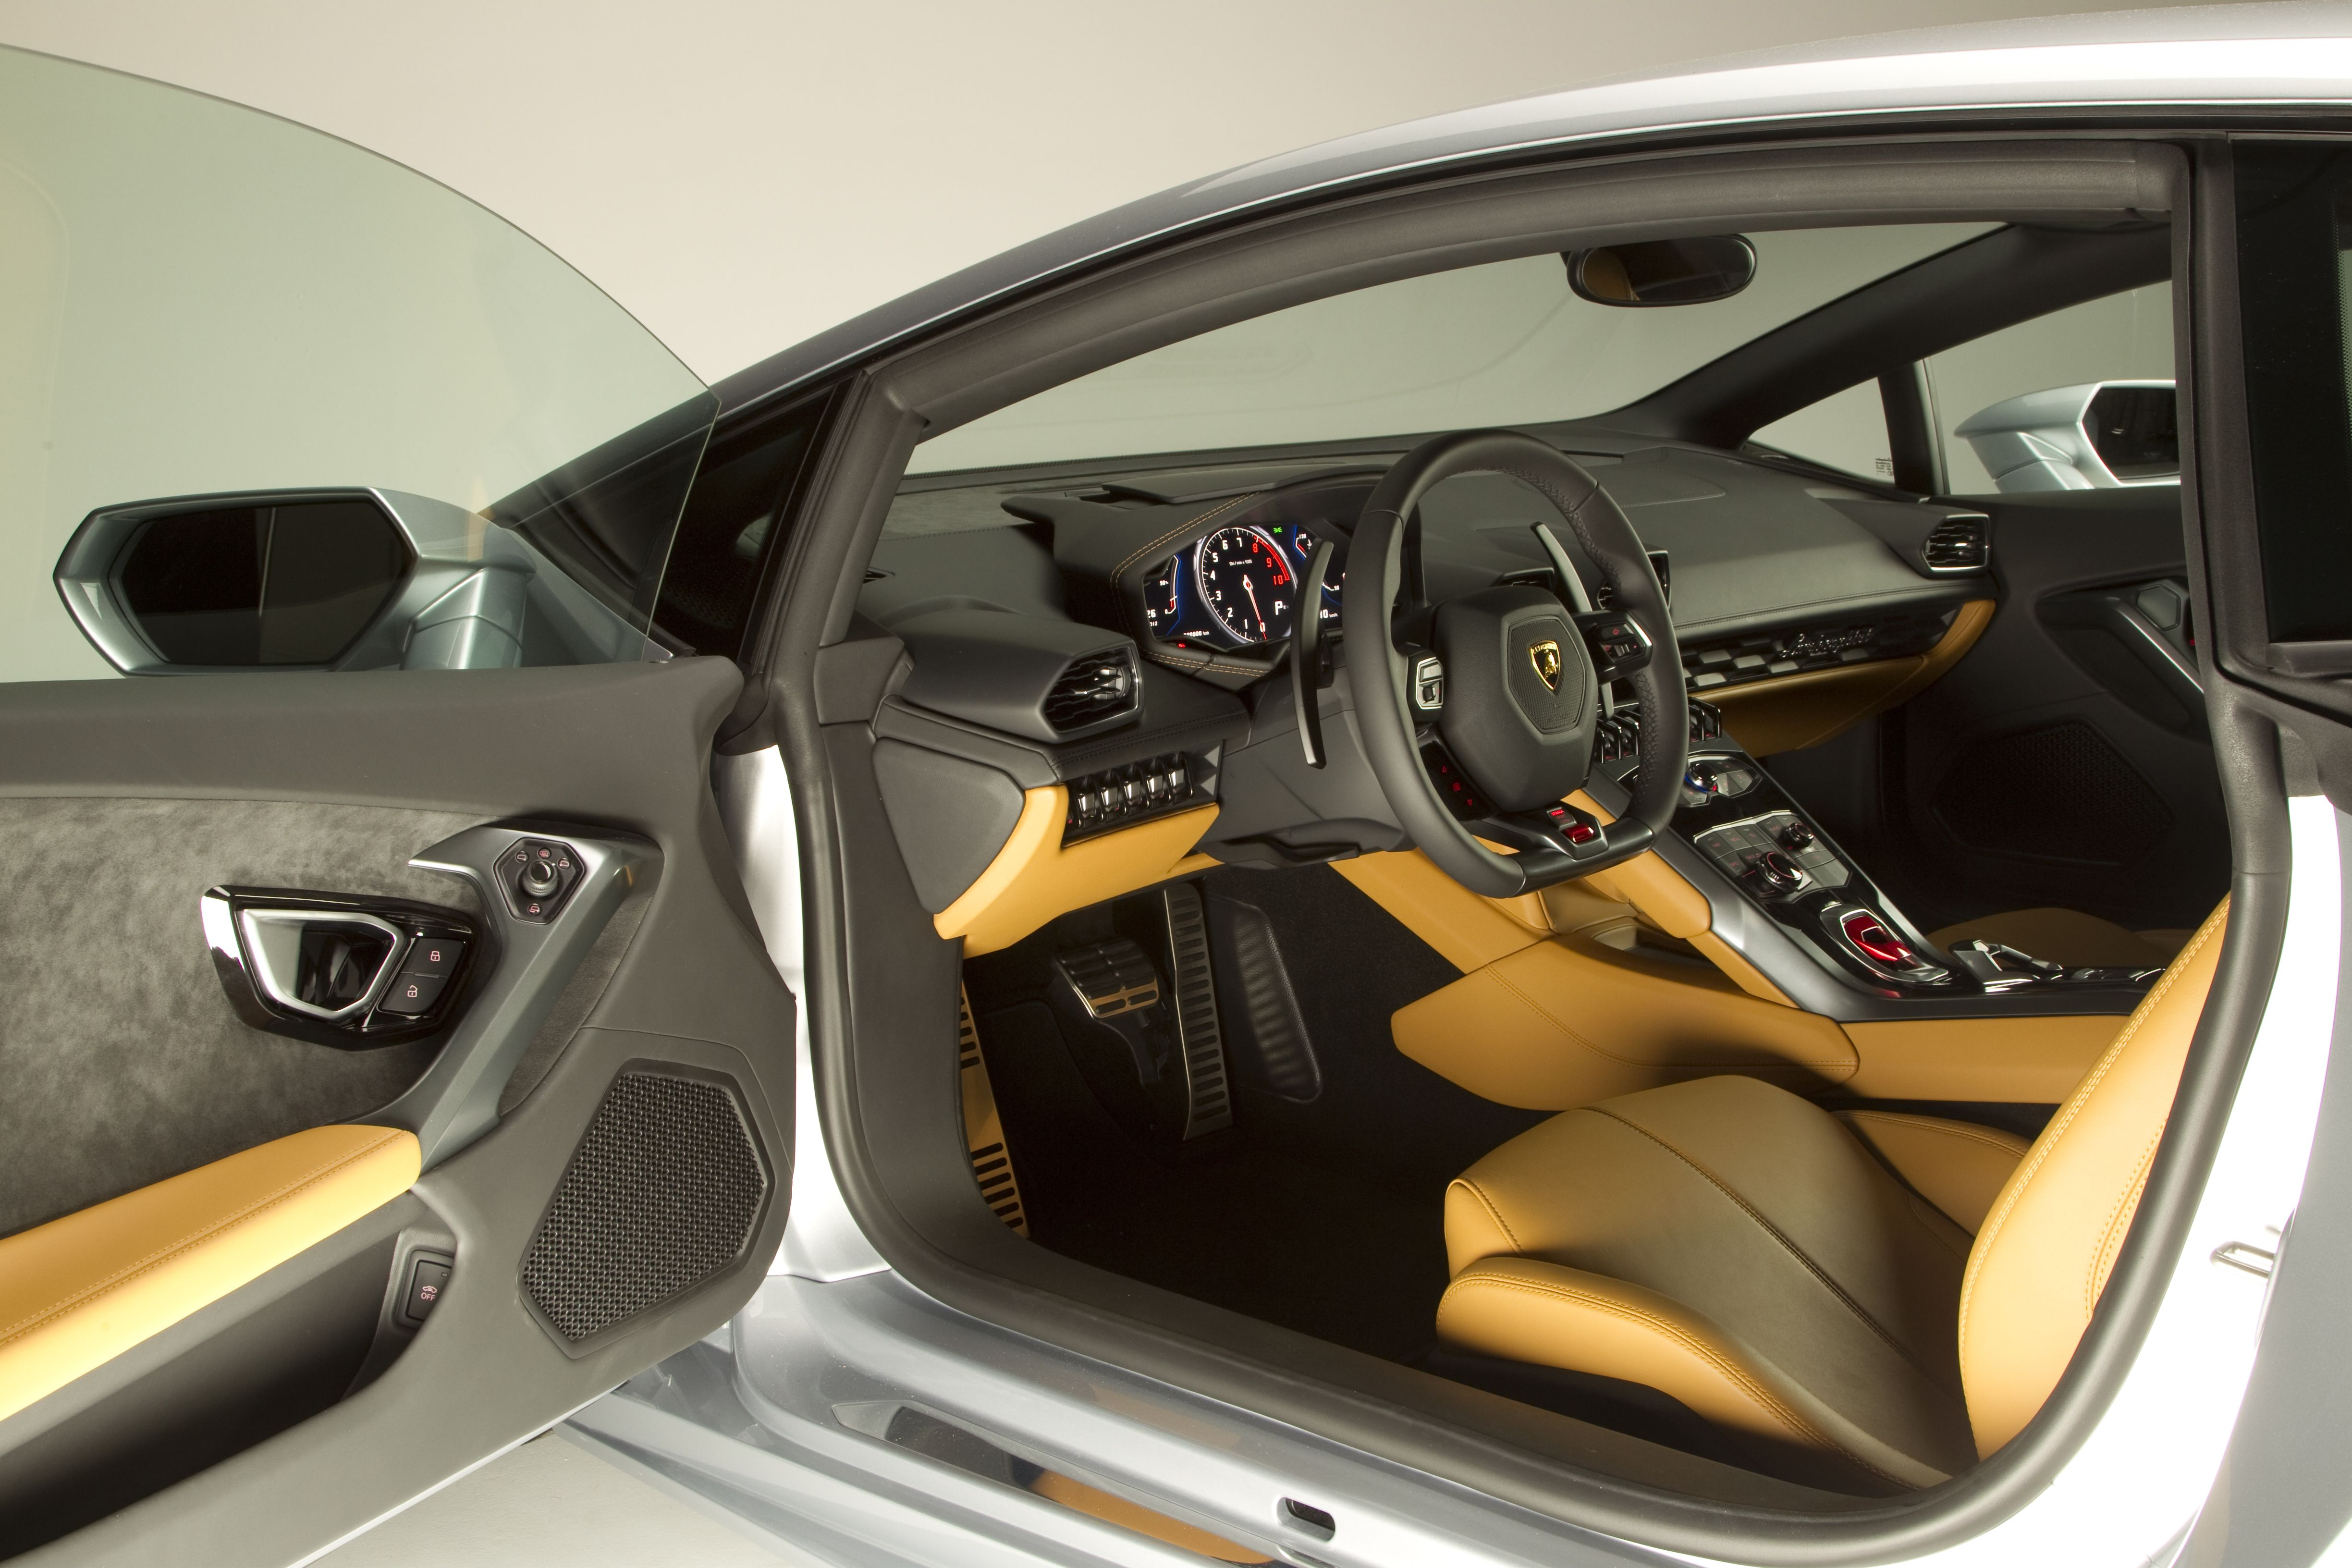 2015 Lamborghini Huracan First Look yellow and black interior silver